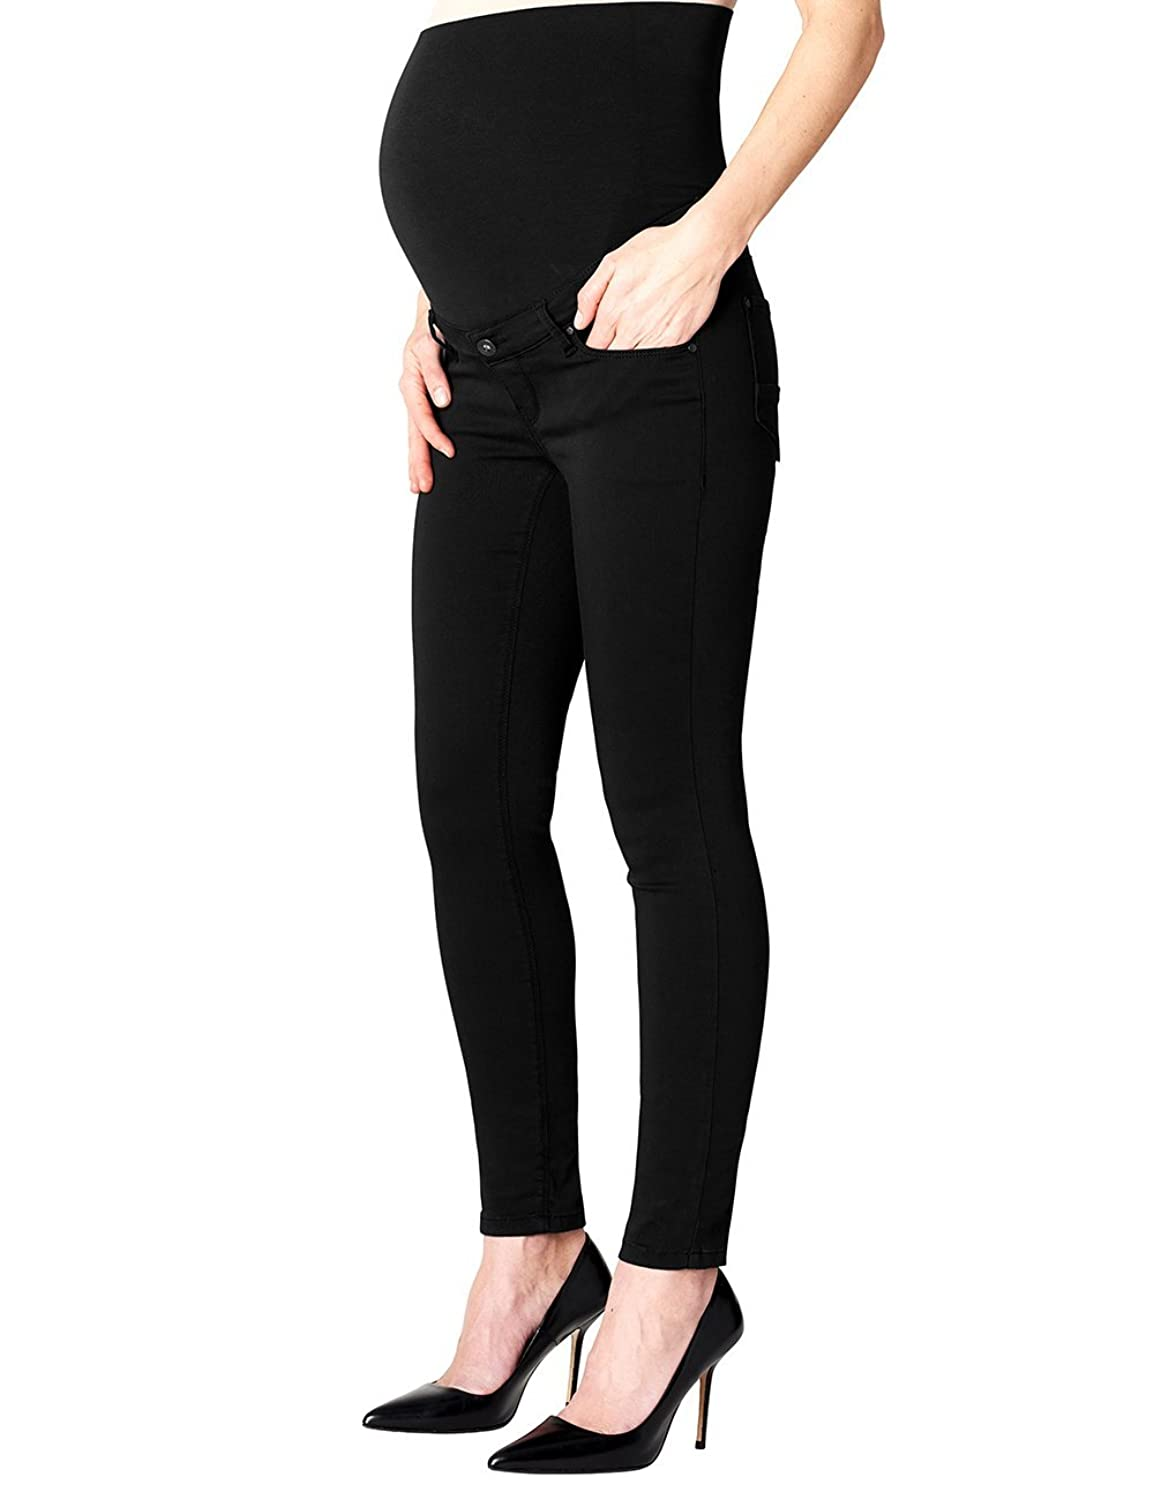 Noppies Damen Umstandshose Pants Otb Slim Bailey 4